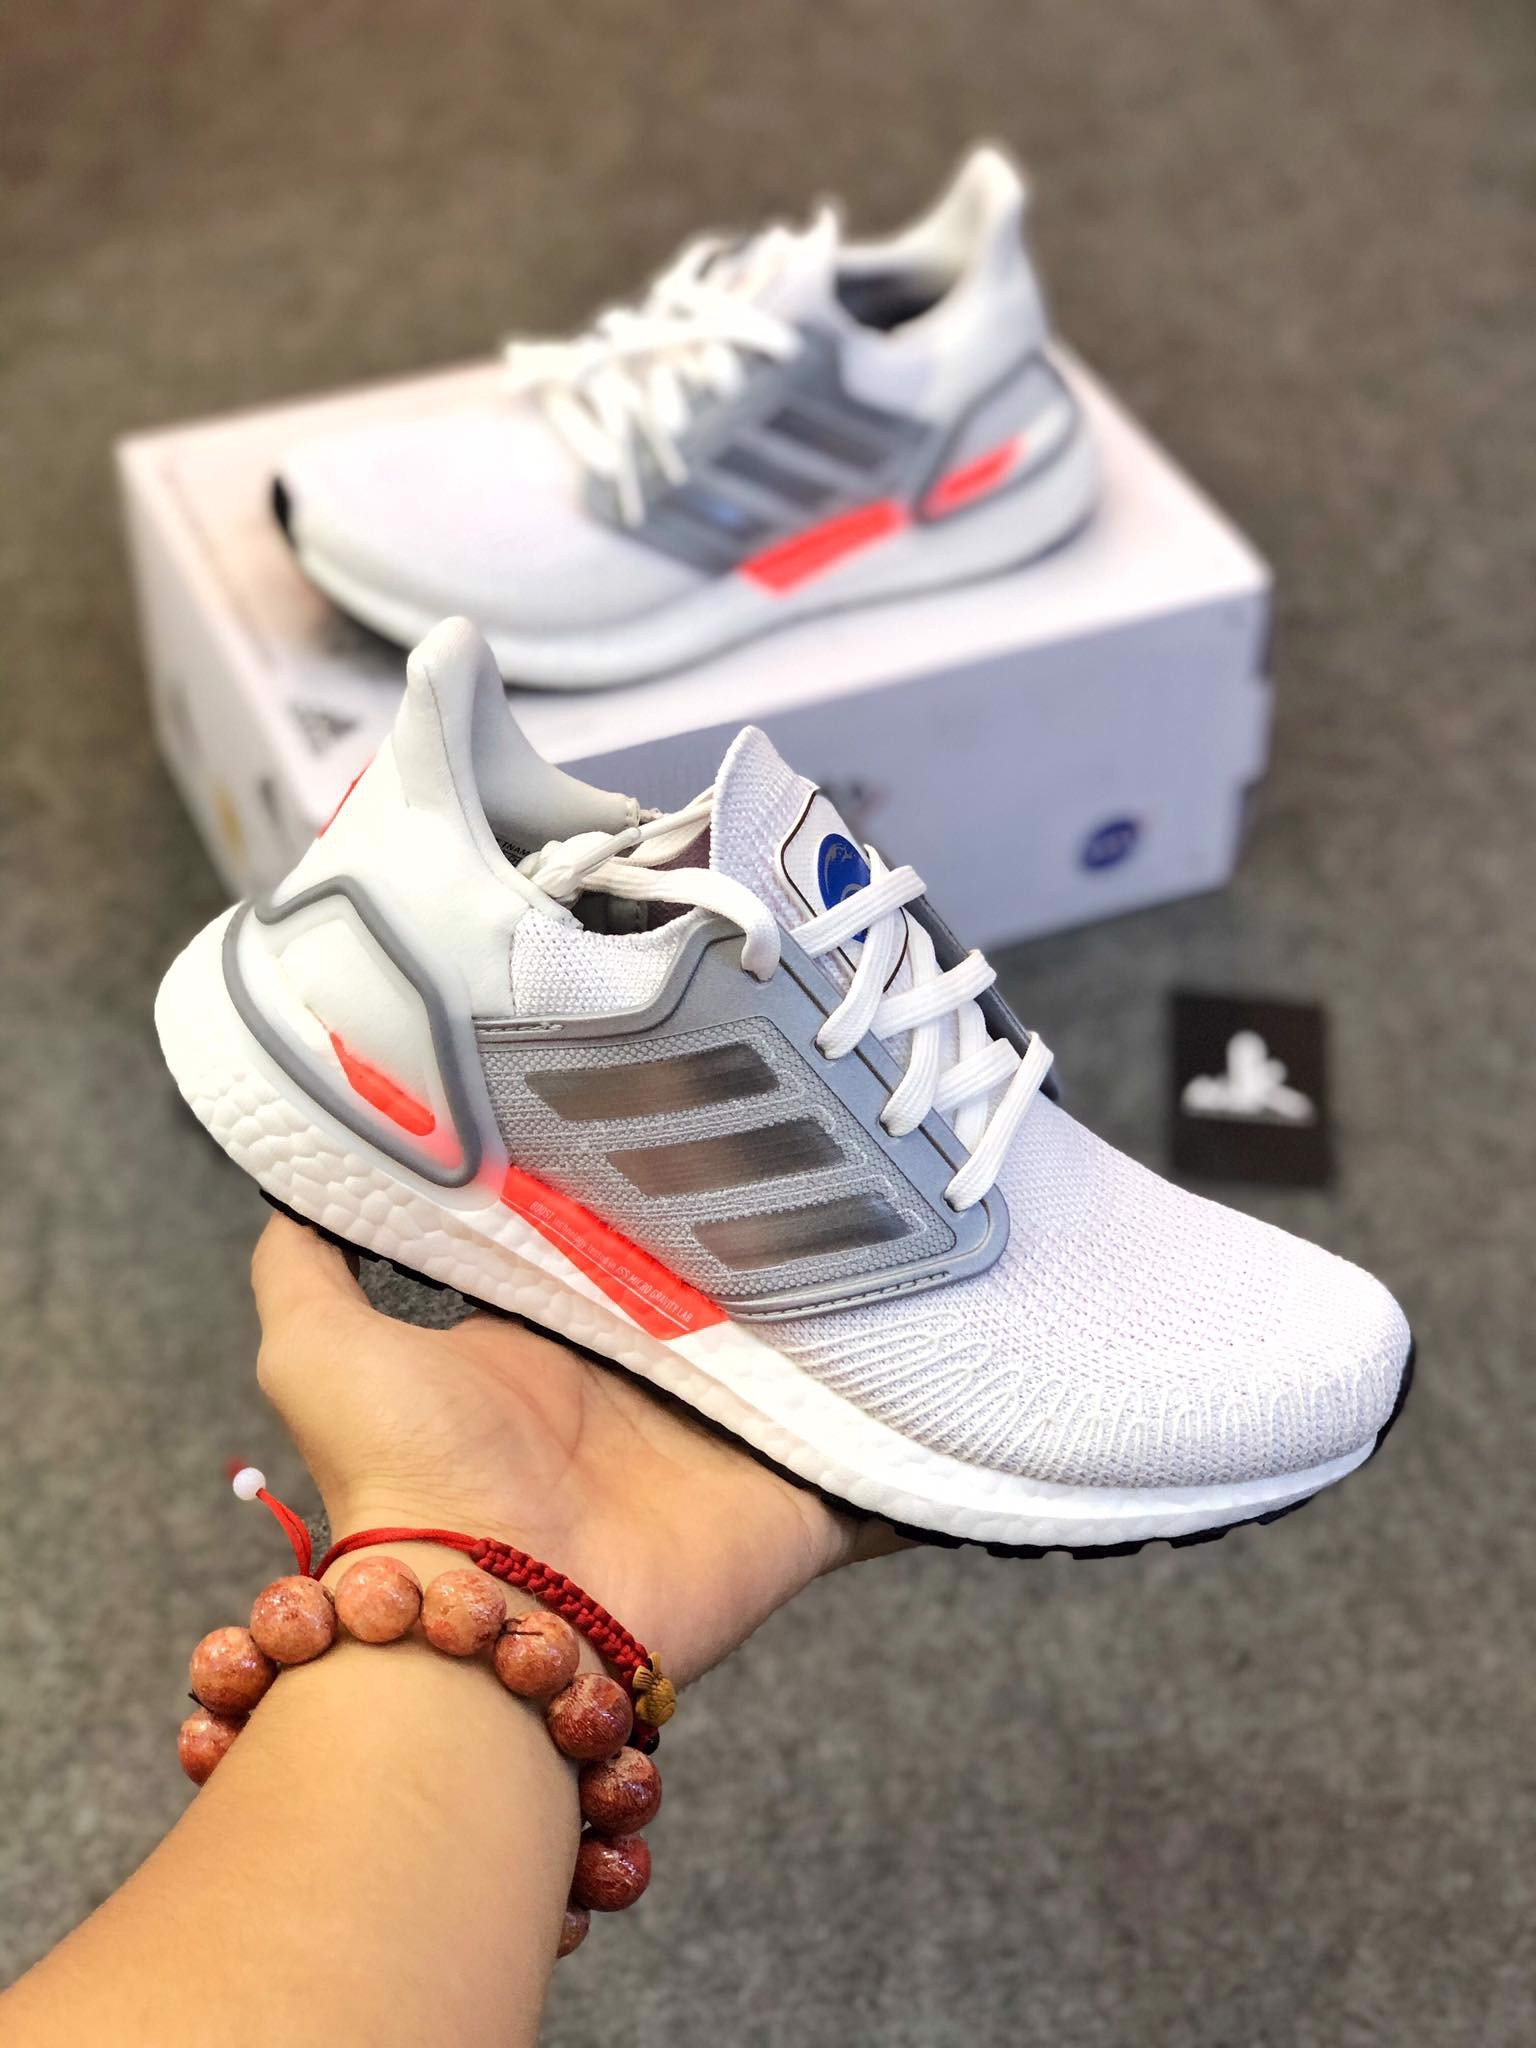 FX7992 UltraBoost 20 x NASA White Silver